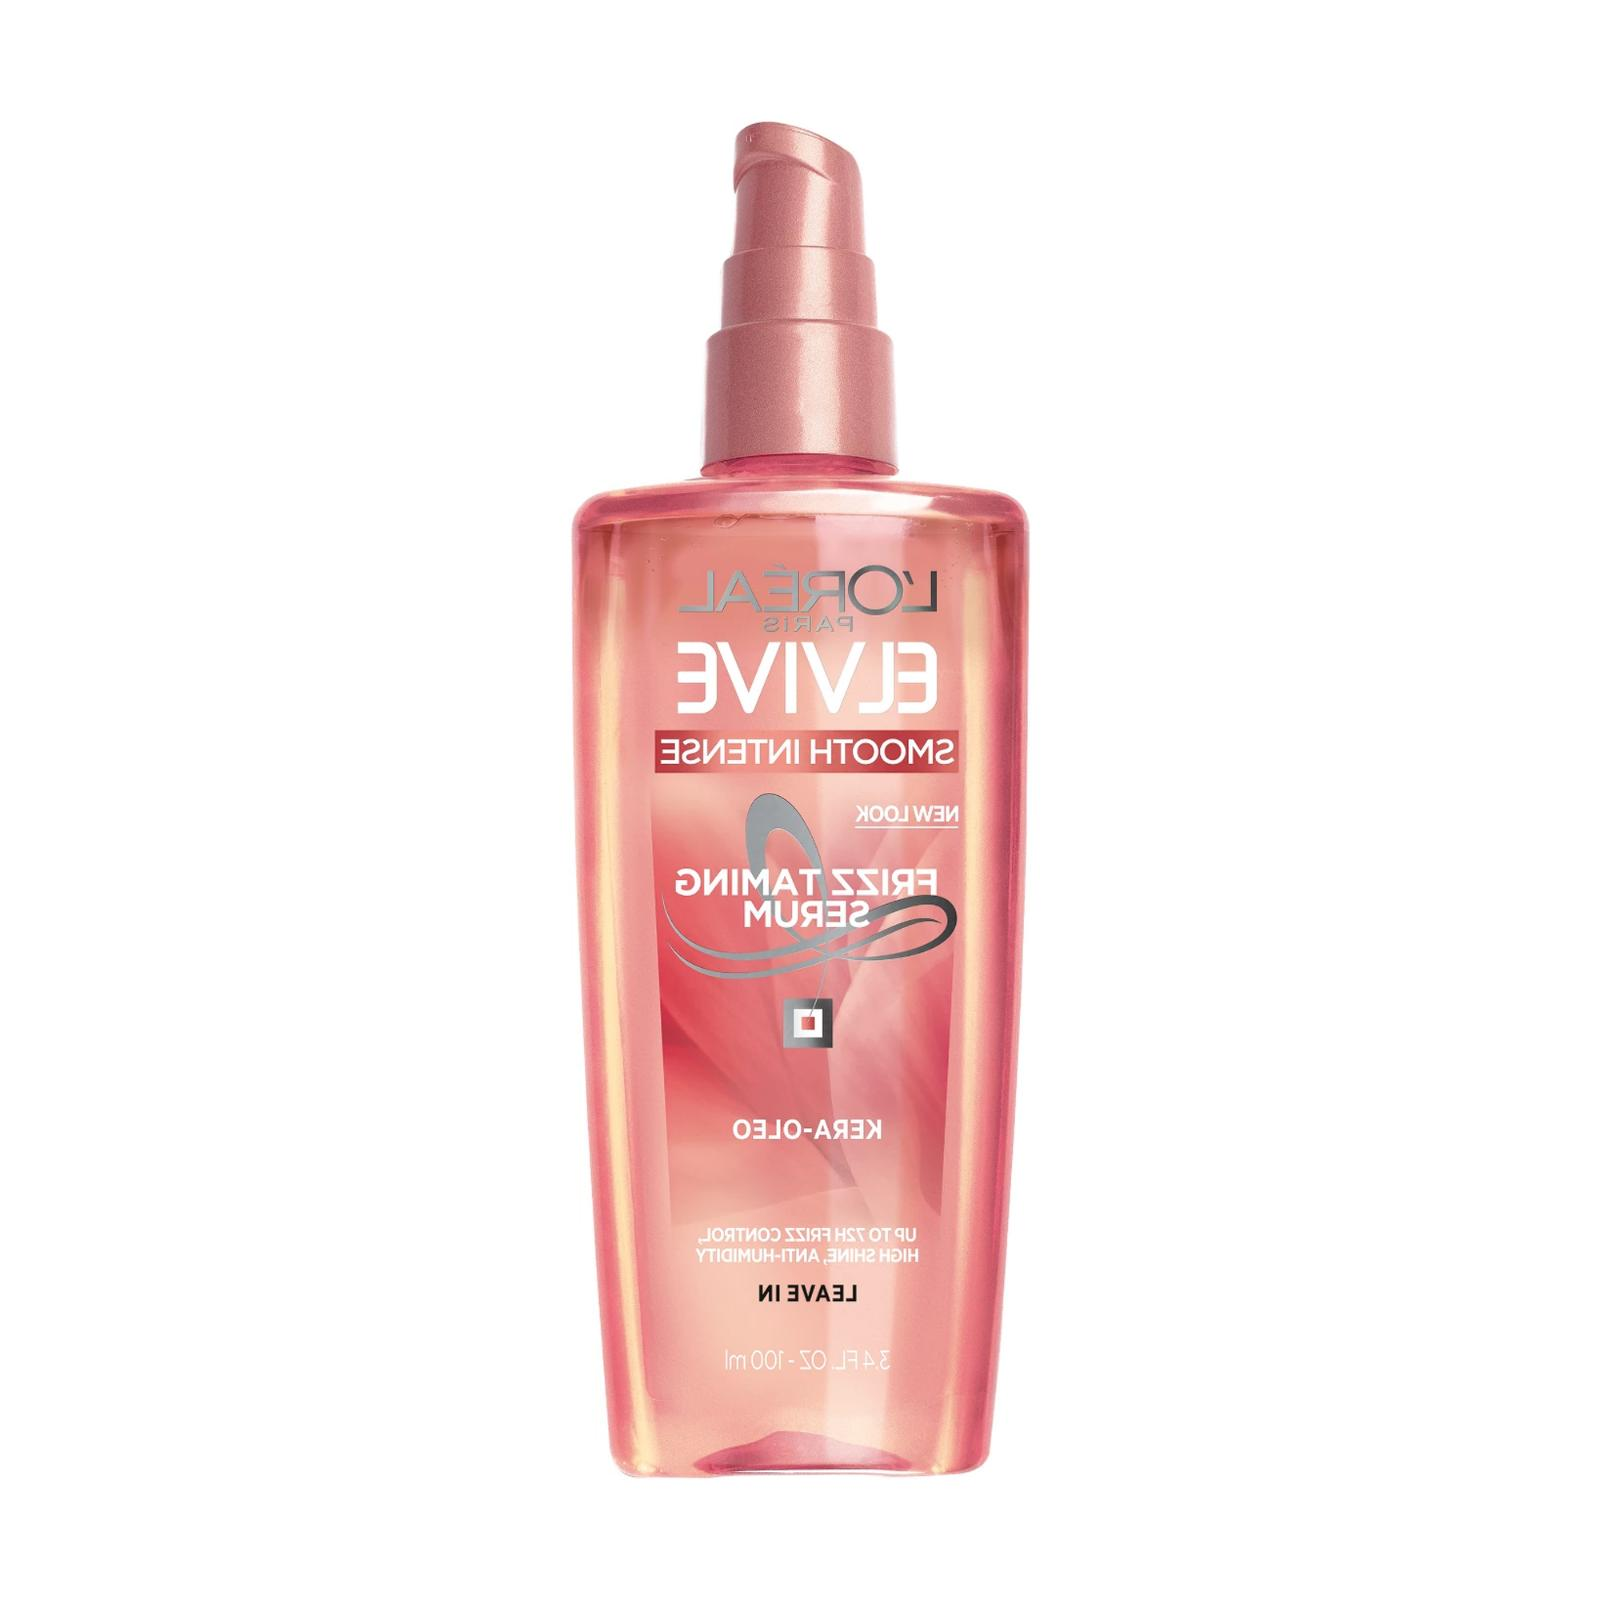 L'OREAL Hair Styling Products Save 25% When You 2